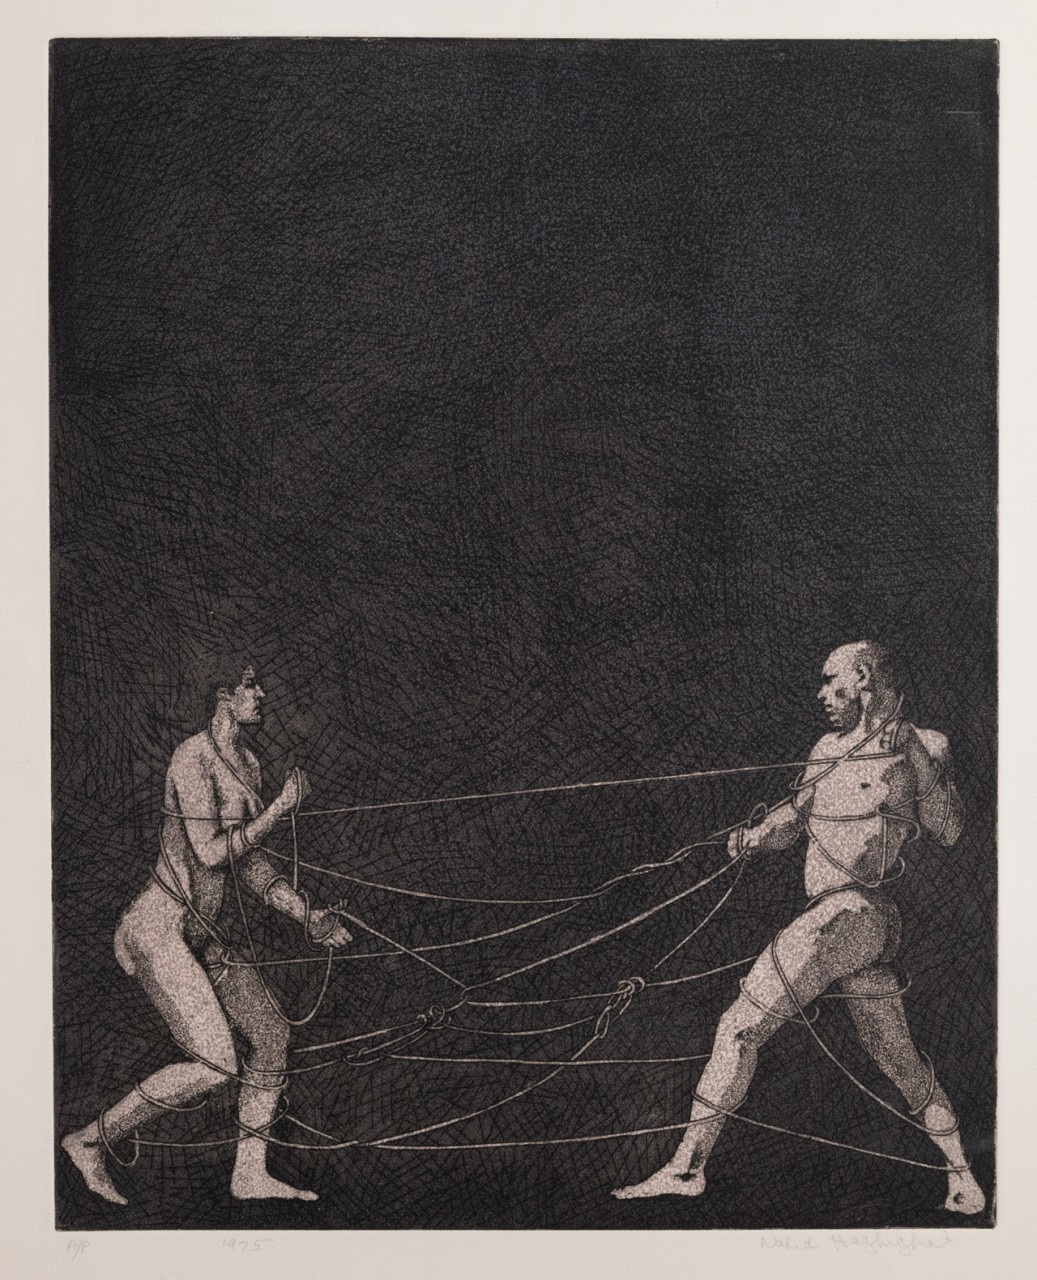 """Struggle"", 1975, Etching/Aquatint, image size 20X16 inches, Edition 2/2"